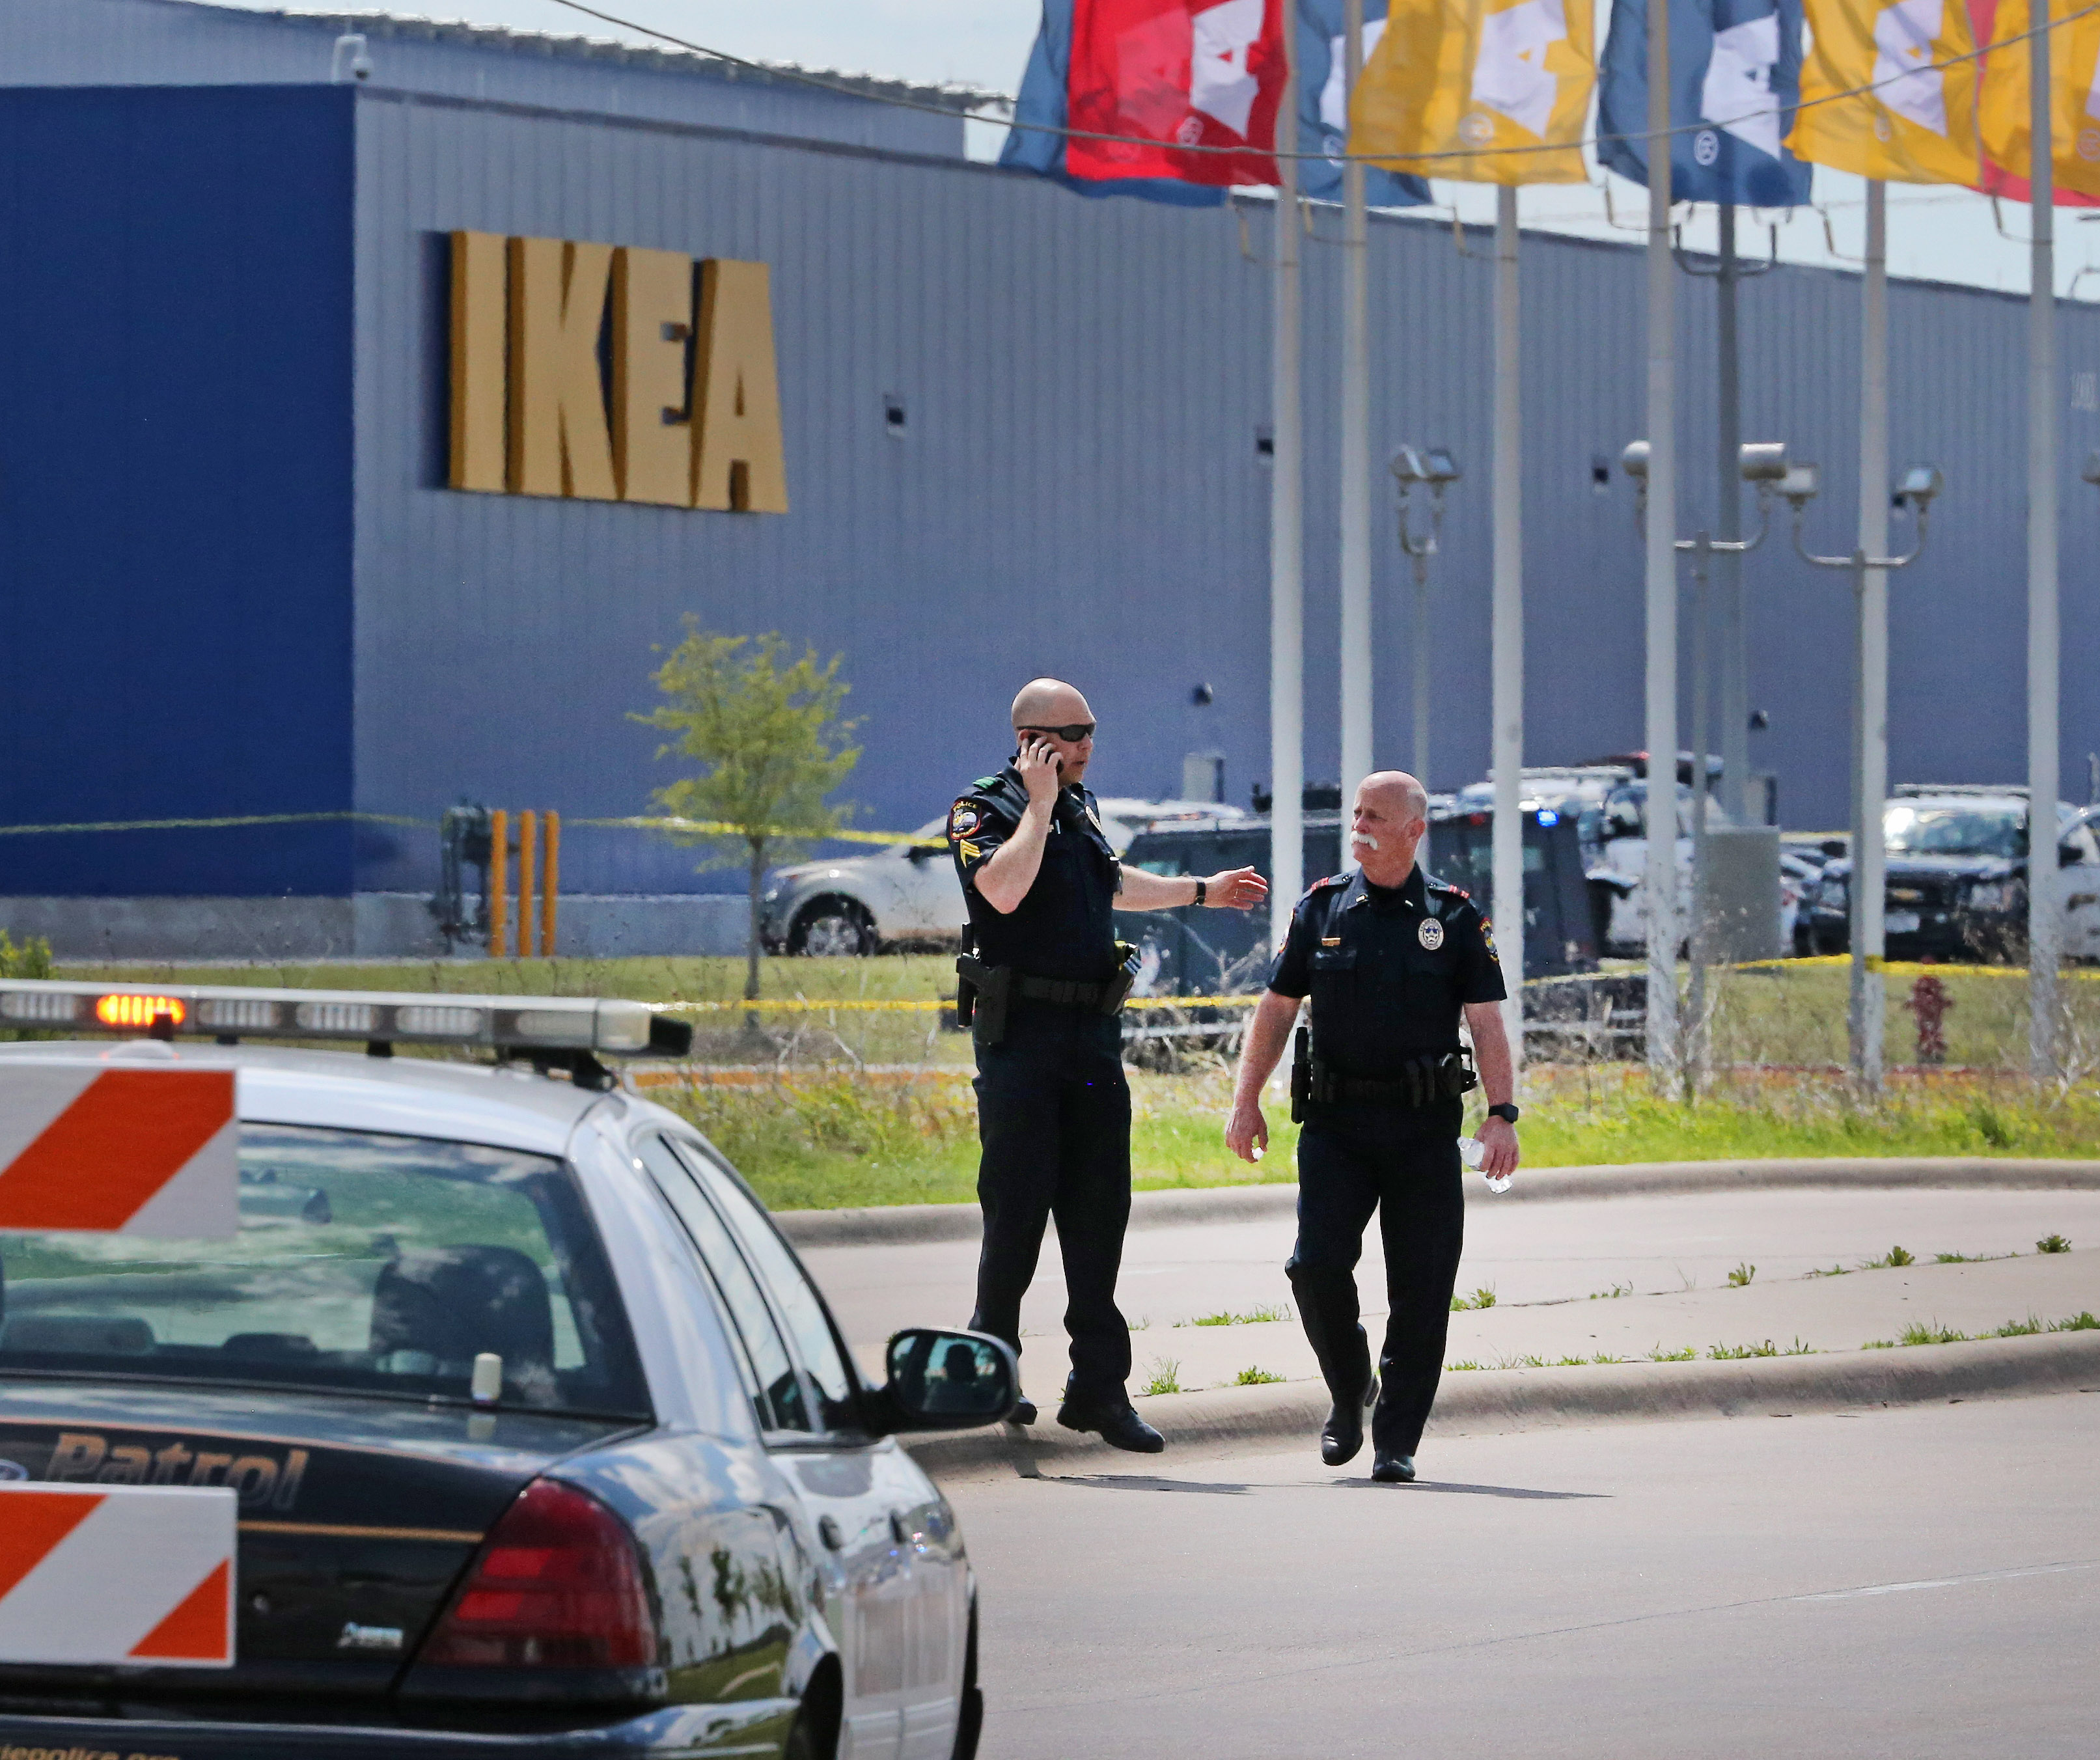 Ikea Frisco Authorities Id Man Killed In Shootout With Police Near Ikea In